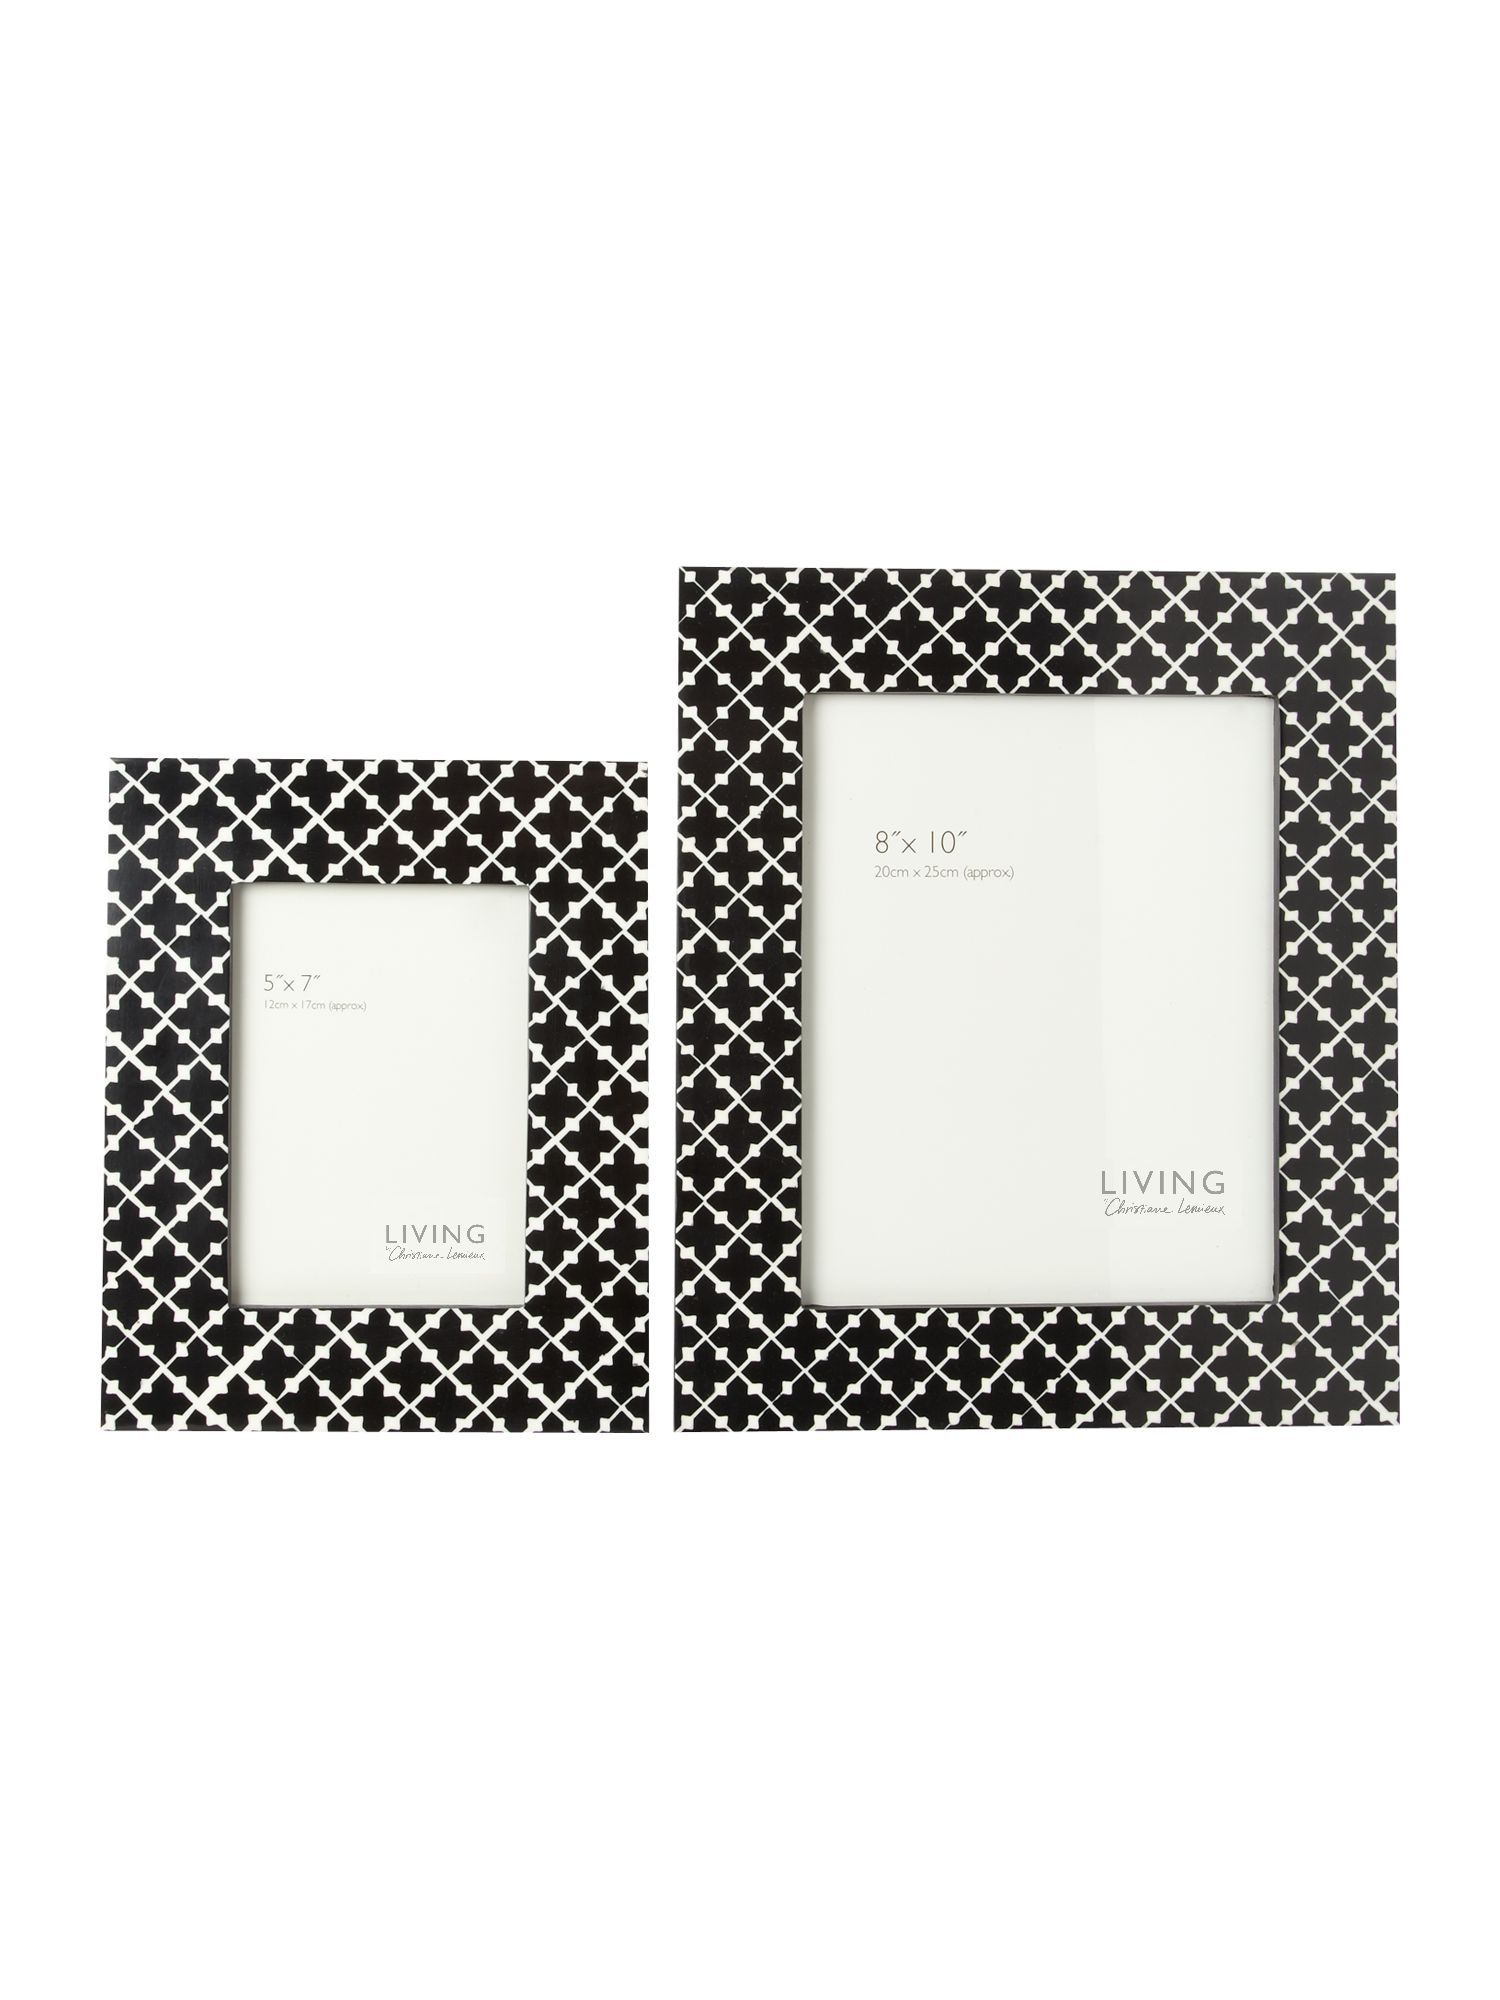 Black and white patterned frames